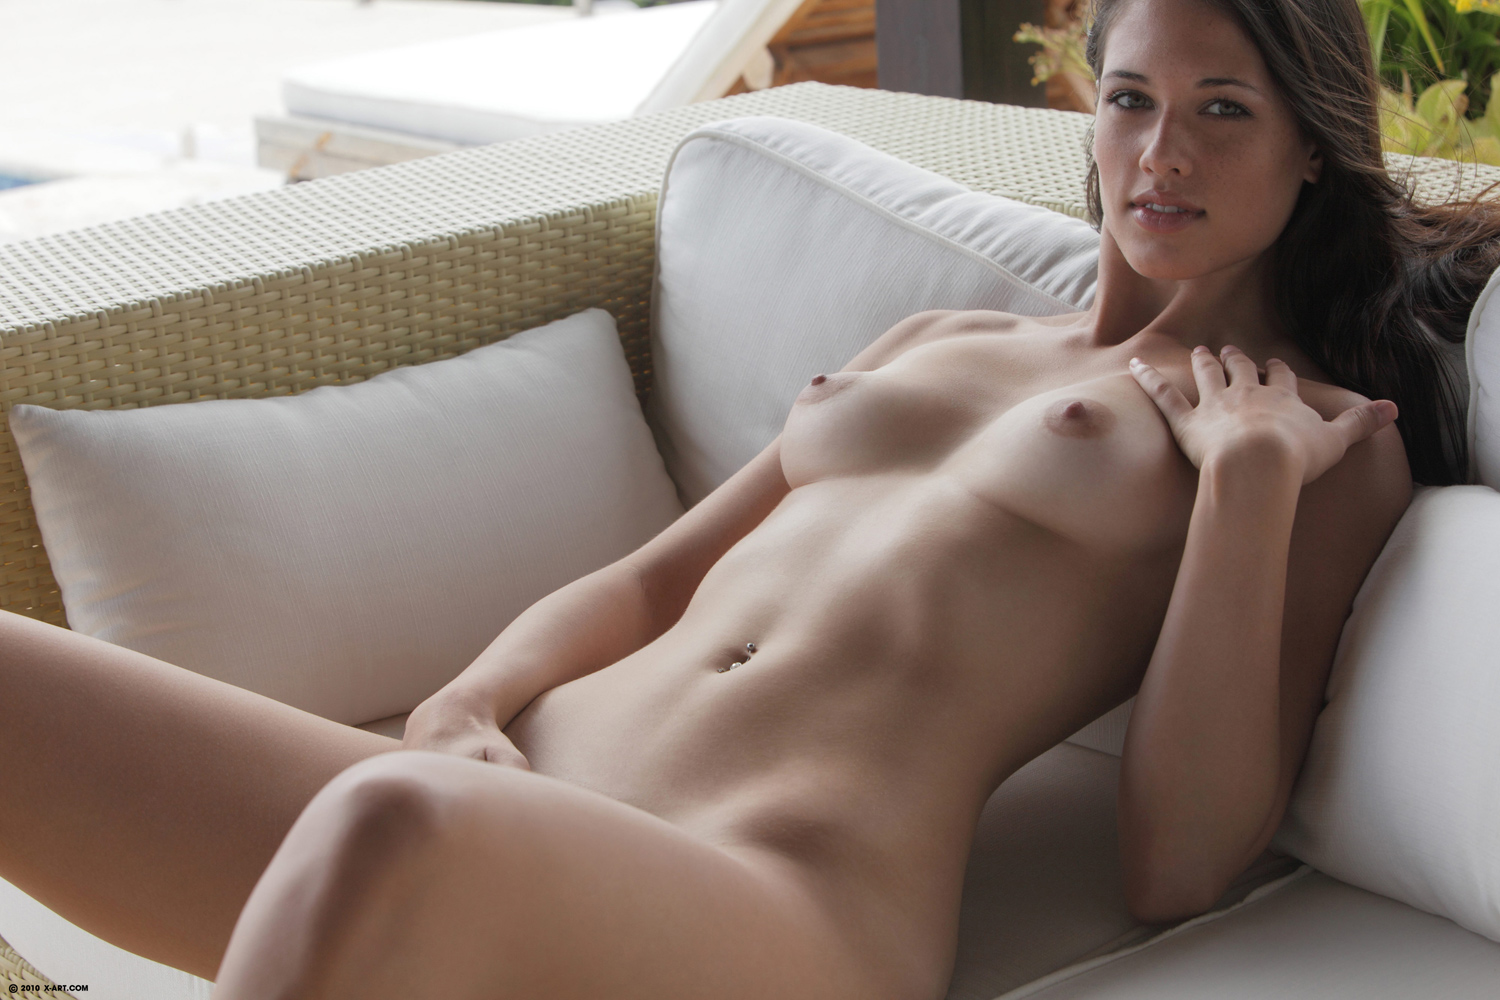 Tiffany thompson nude